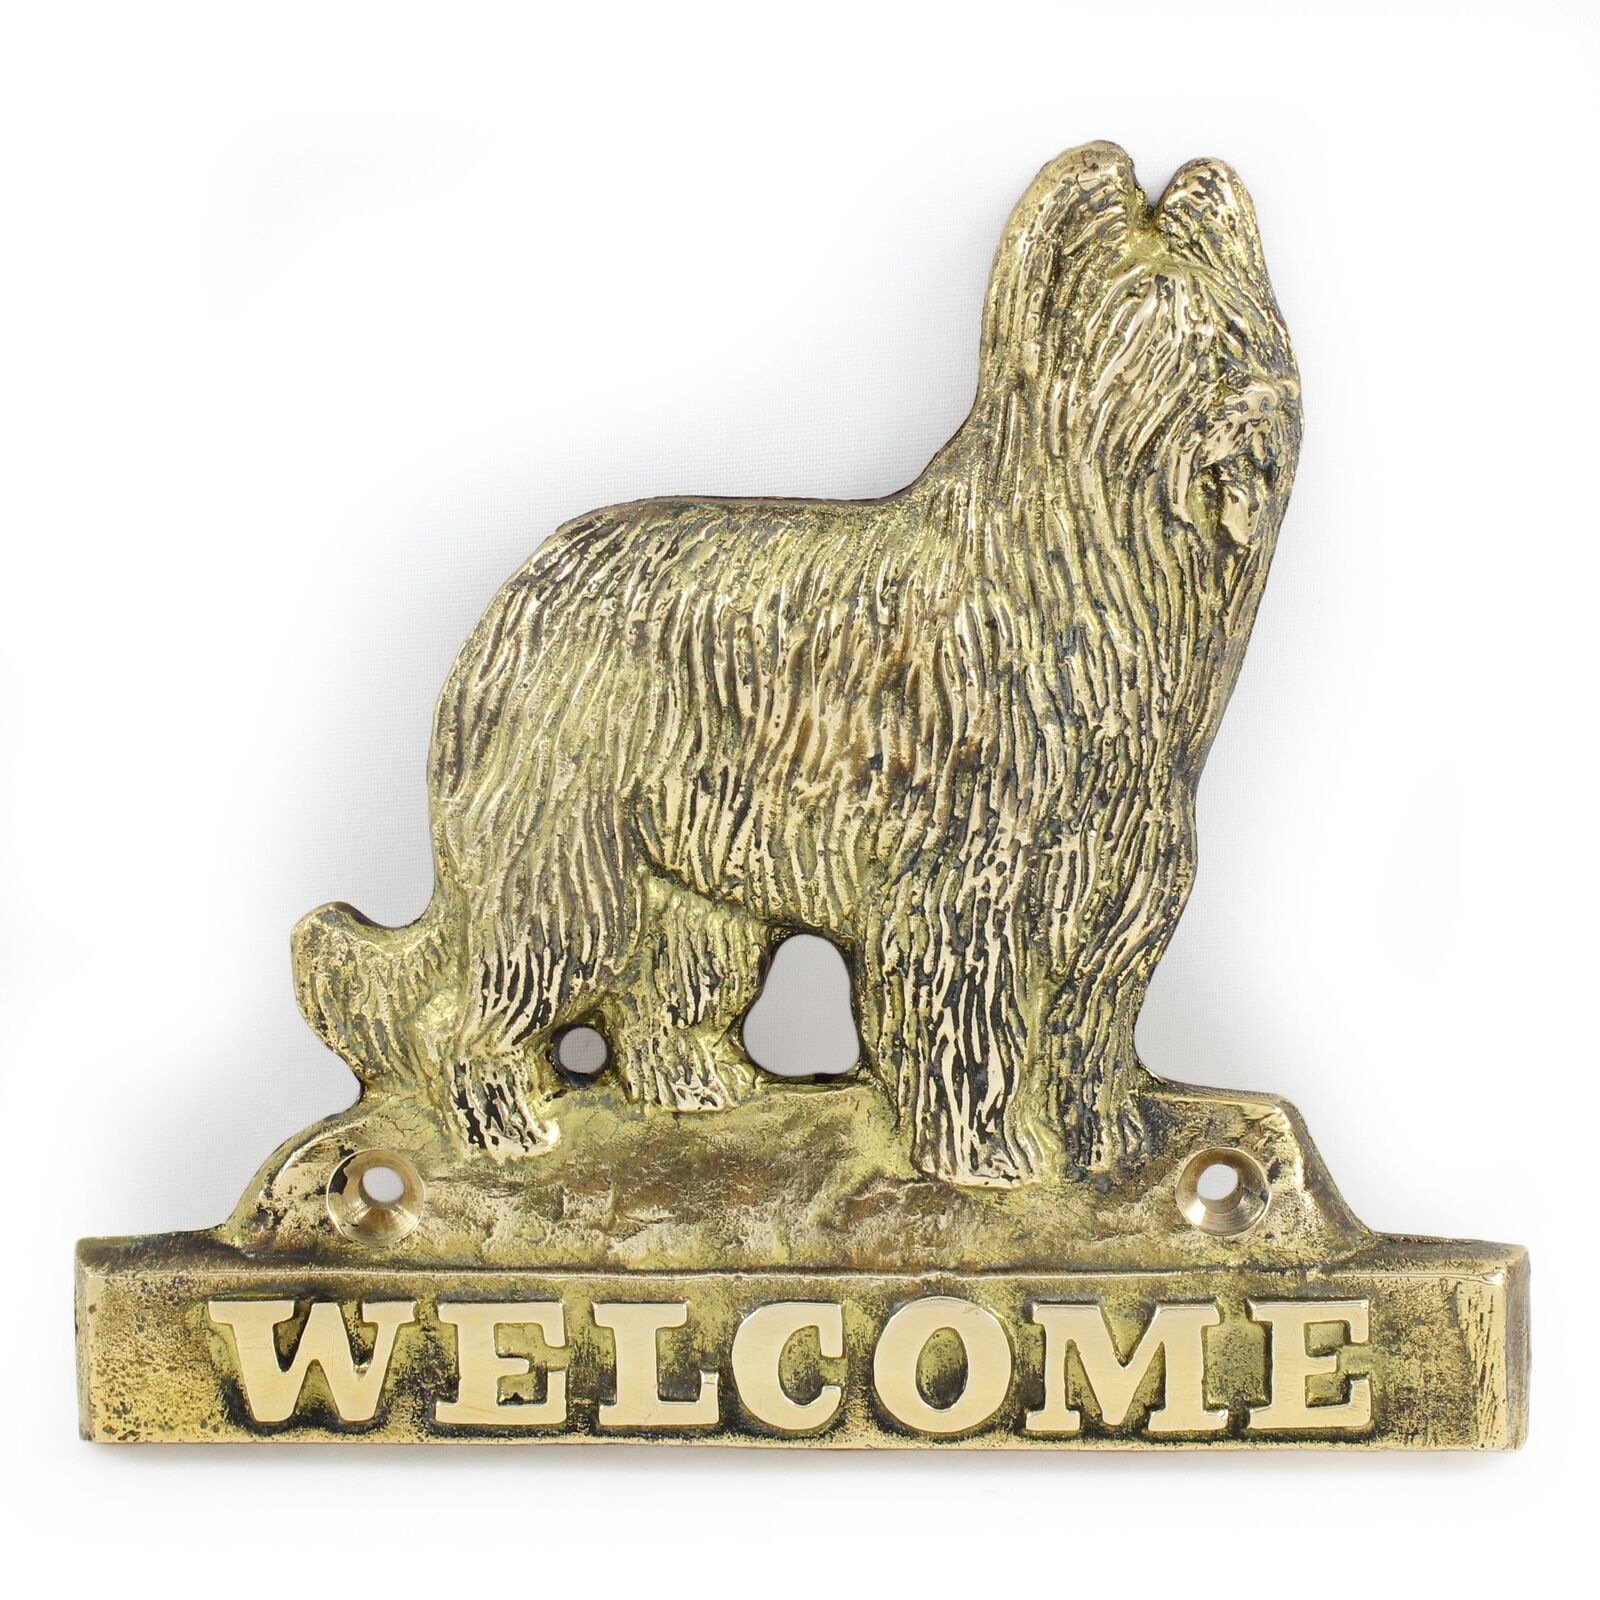 Briard - brass tablet with image of a dog, Art Dog